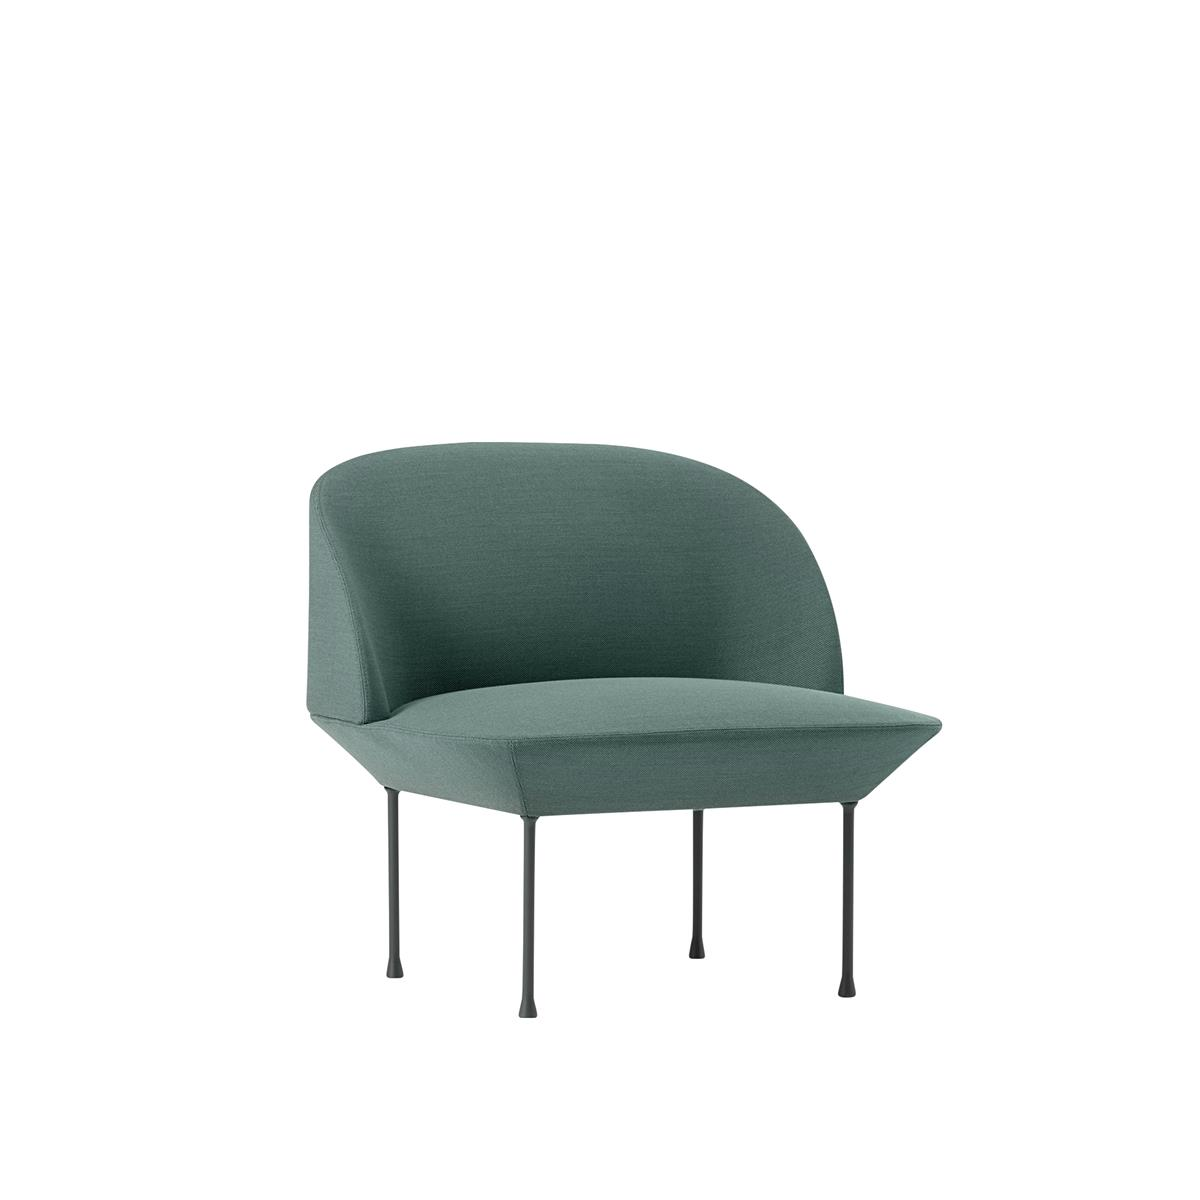 Oslo Lounge Chair - Steelcut Trio 966 & Dark Grey Legs